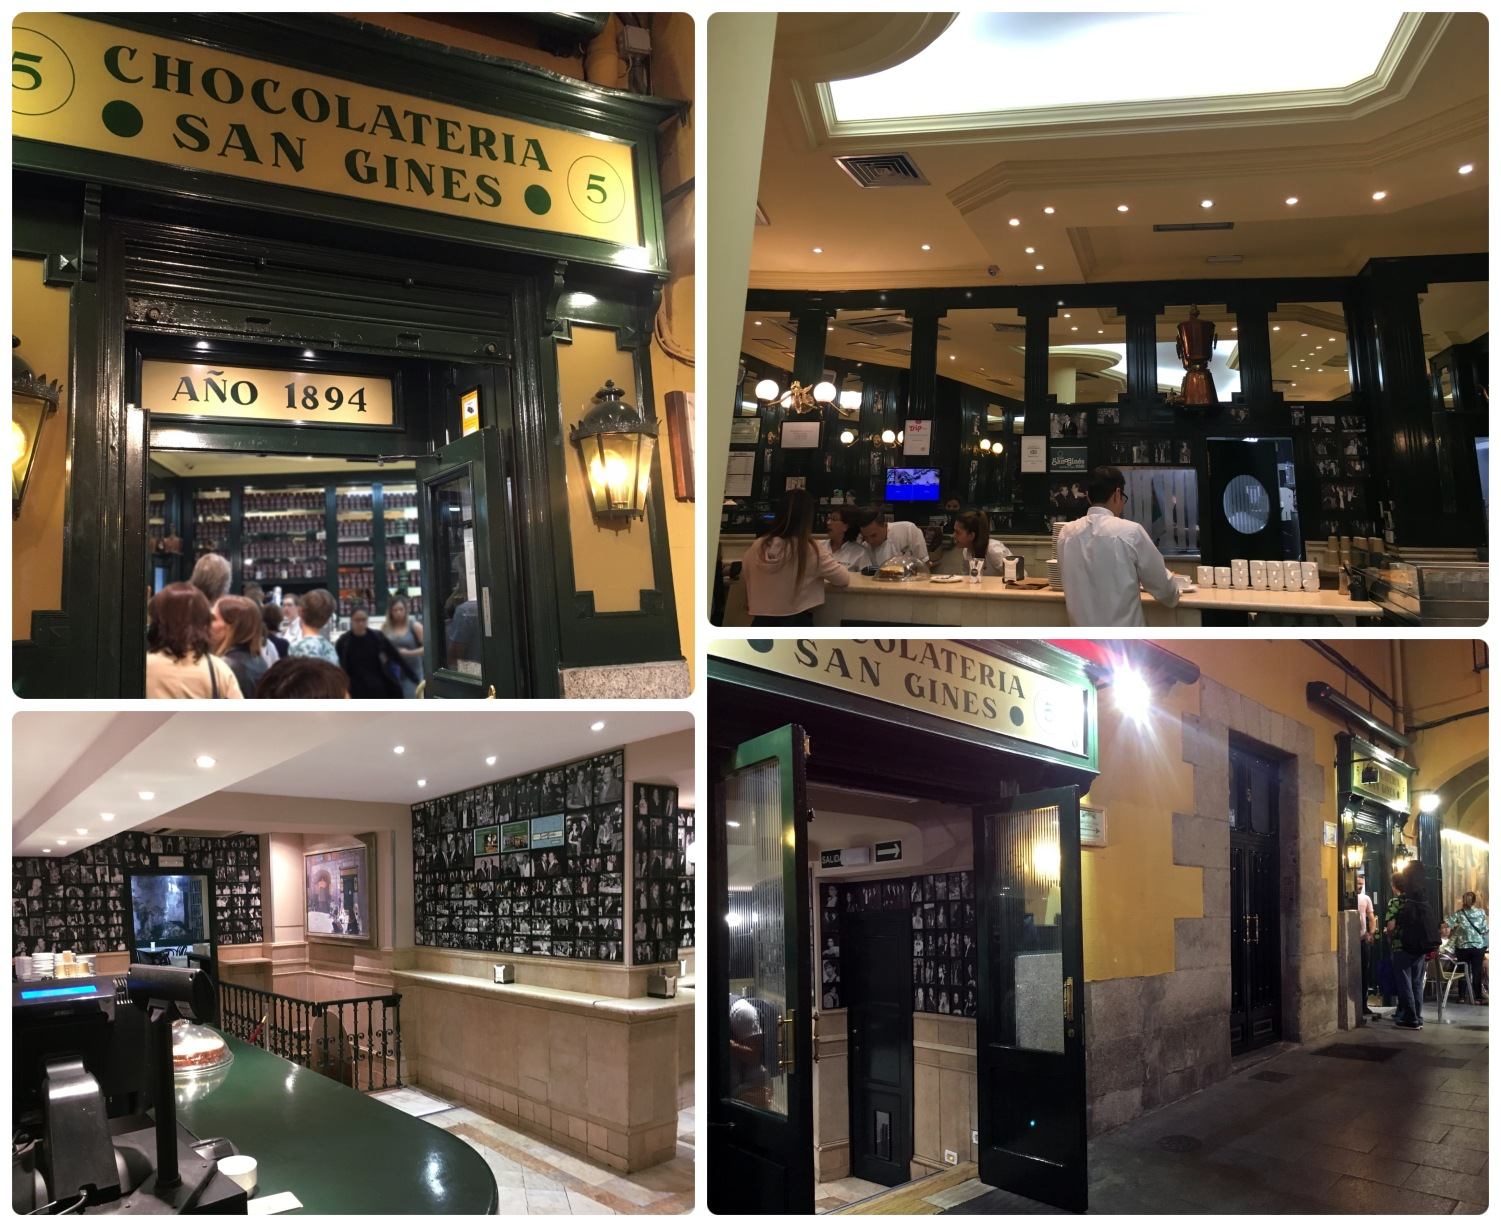 When we arrived at Chocolateria San Gines it was still early for most, but there was a line out the door to order! We stood in line to order at the side door (top left image) and noticed that there was a second ordering area to the left for when it gets really busy (bottom right image).